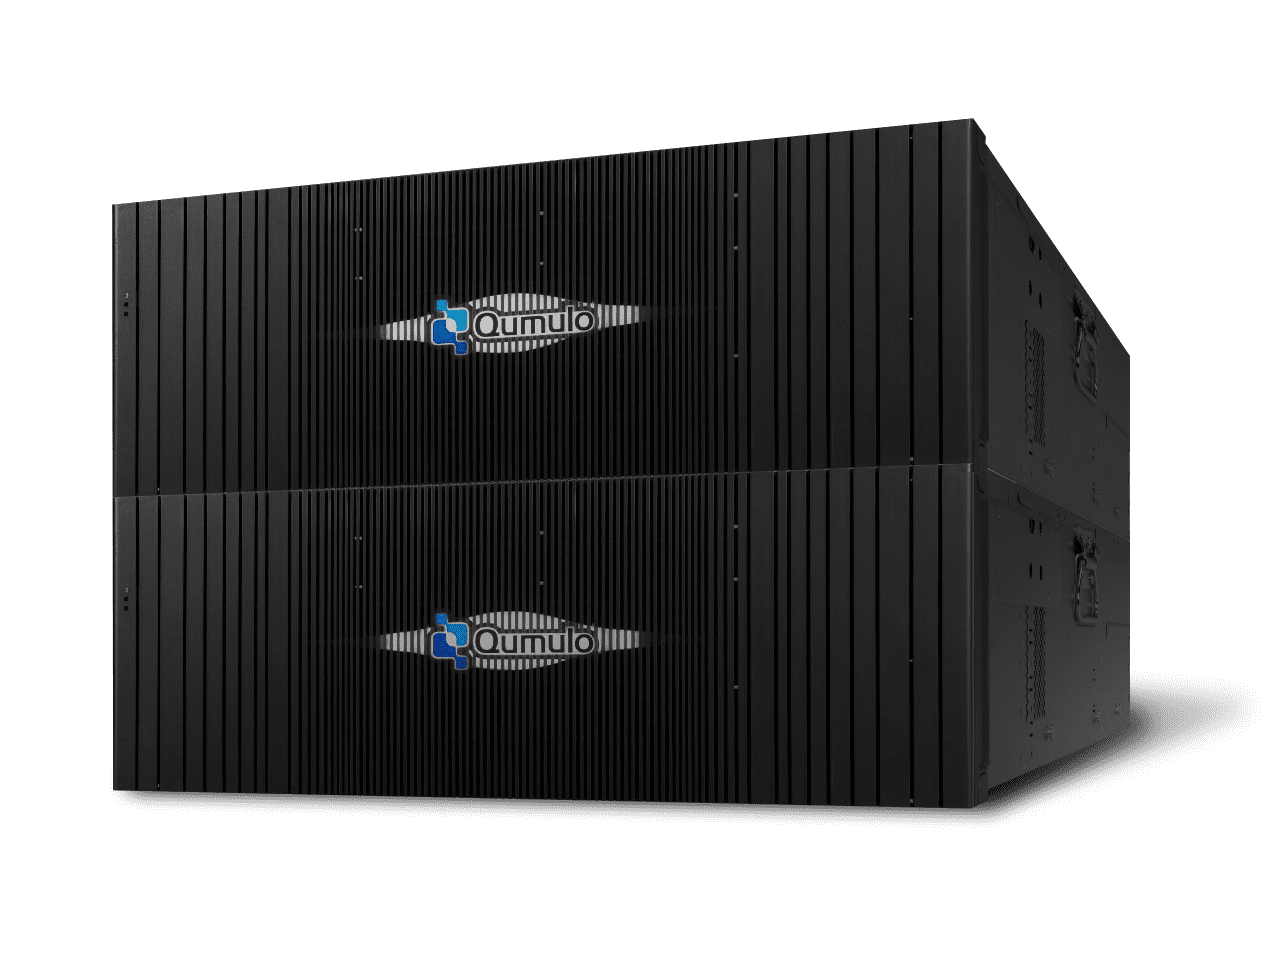 High Performance Enterprise Scale-Out NAS Storage Solutions